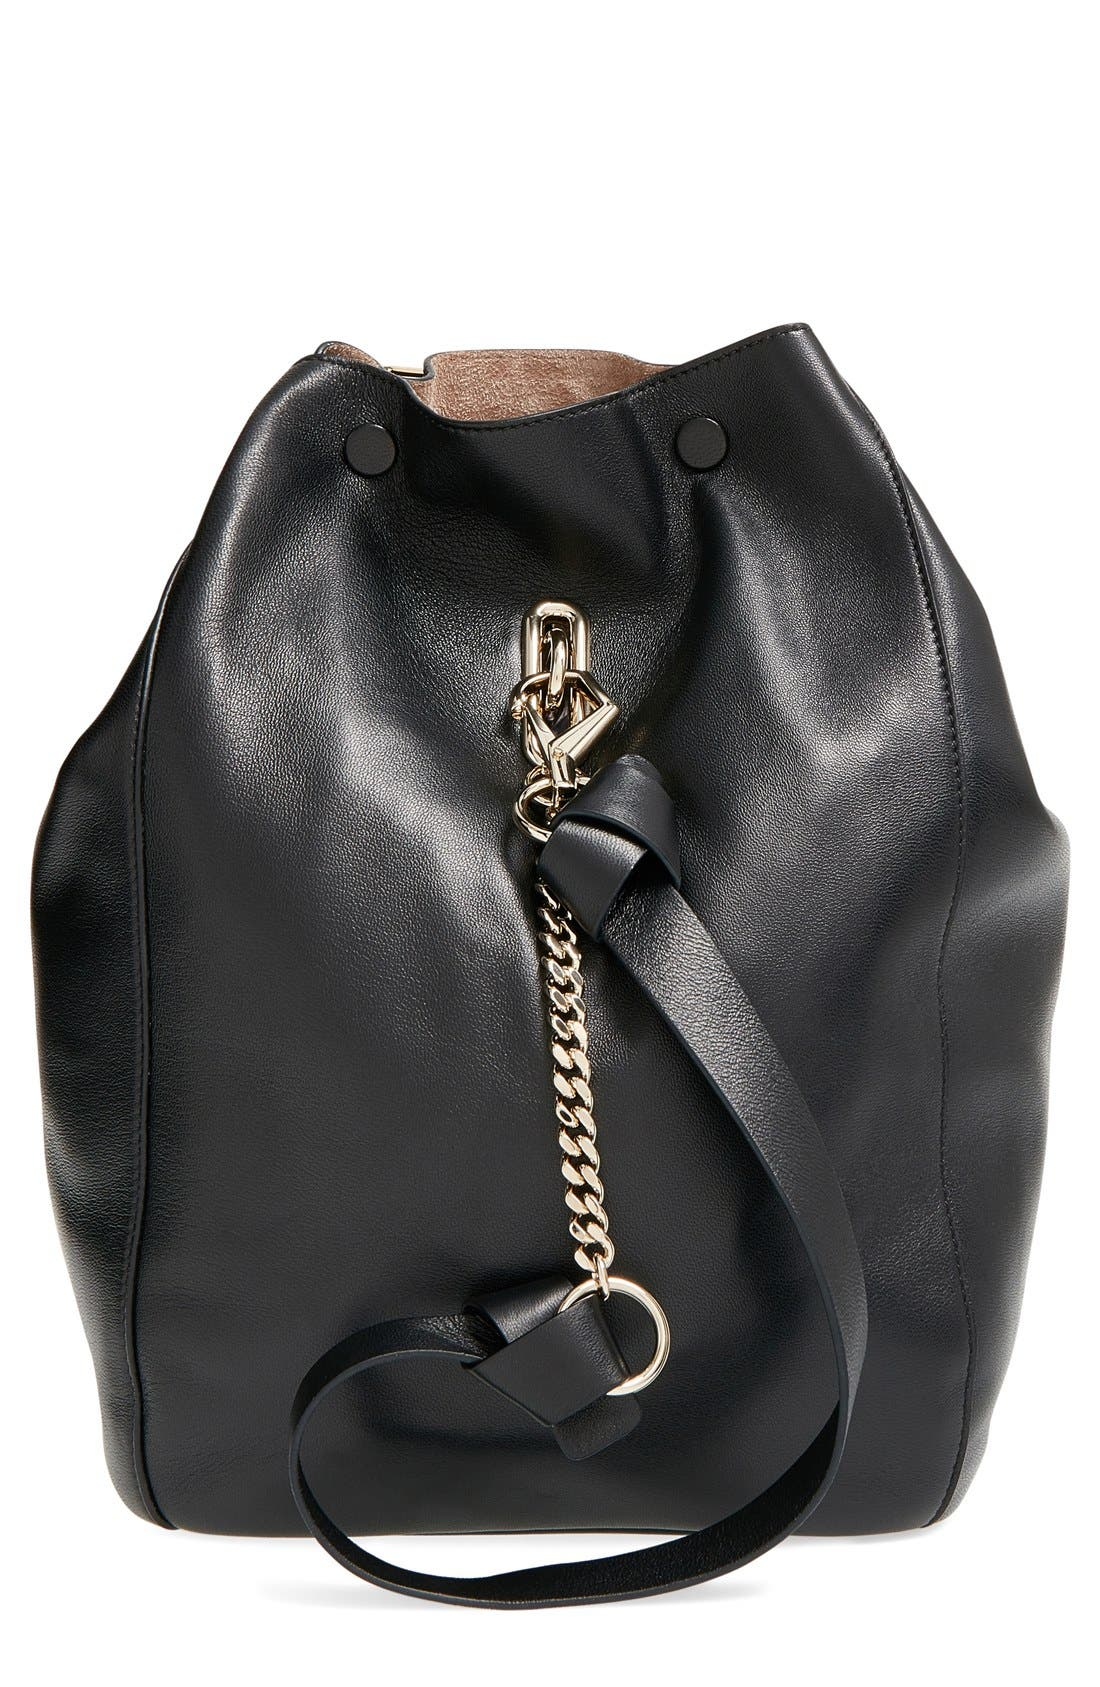 'Echo' Bucket Bag,                             Main thumbnail 1, color,                             001